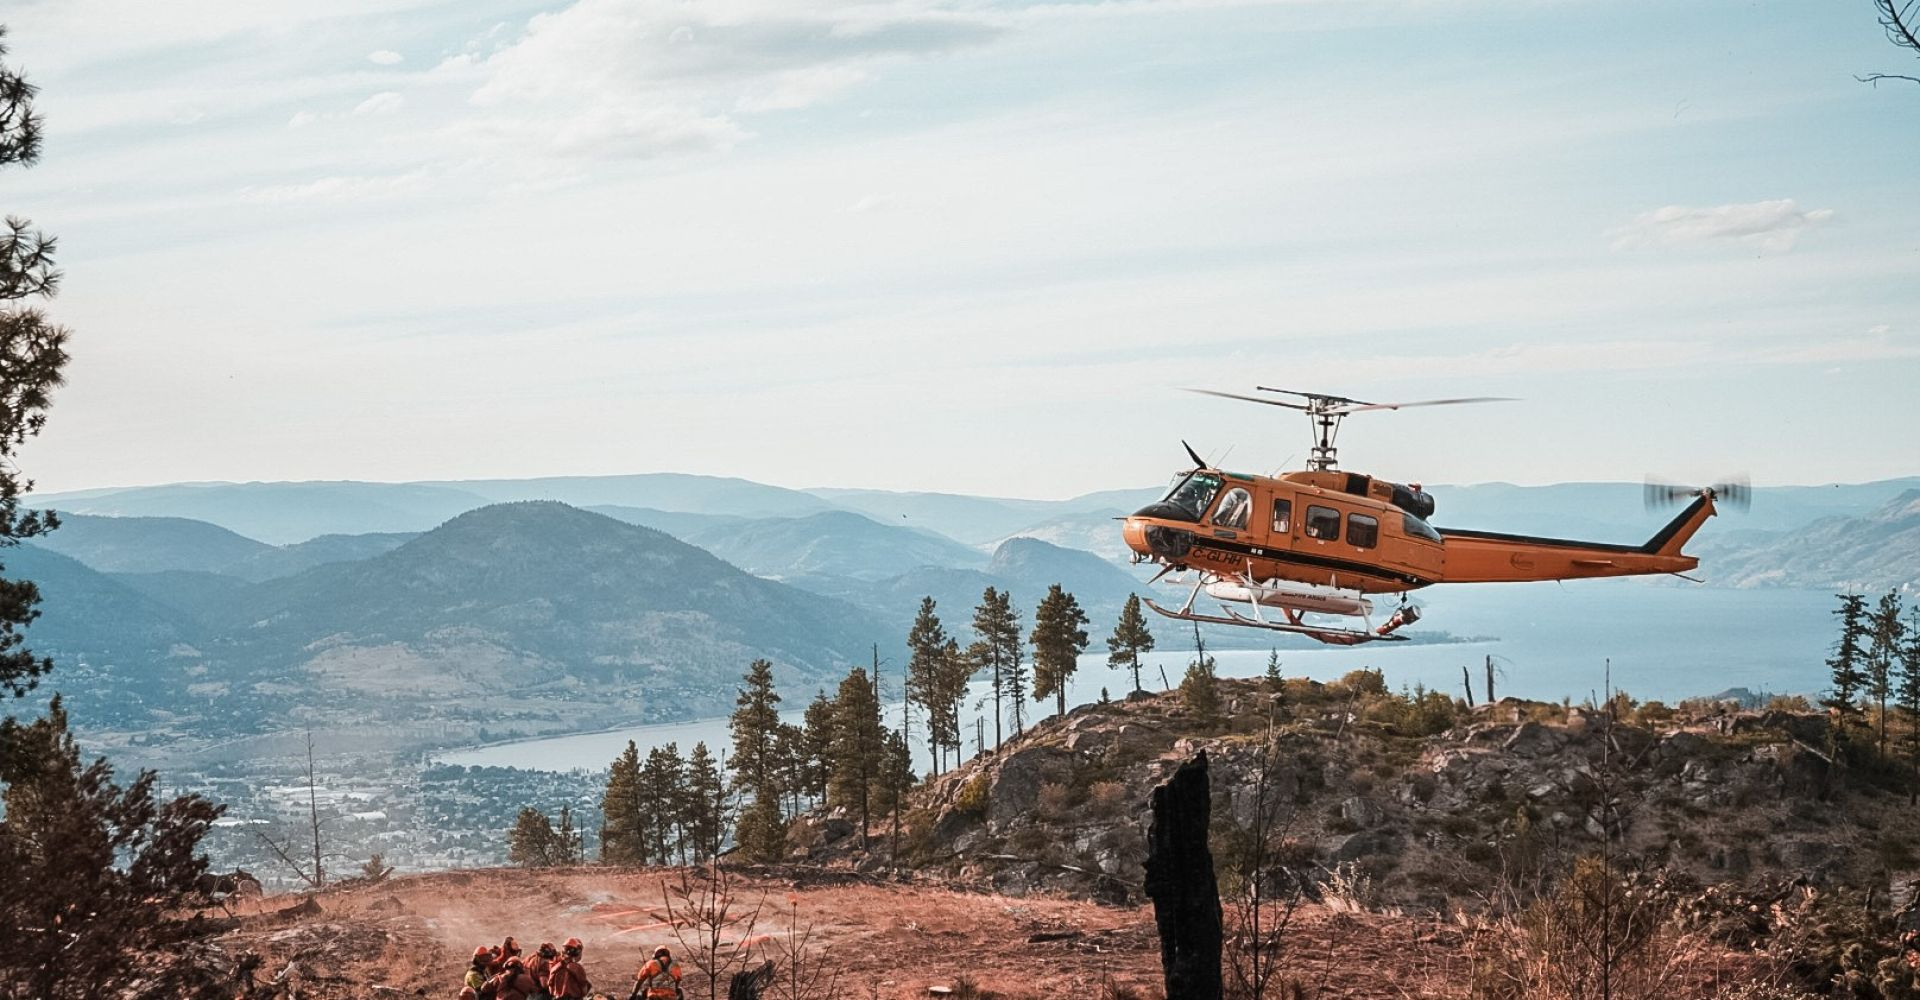 Fire Helicoptor landing on top of mountain with fire crews below